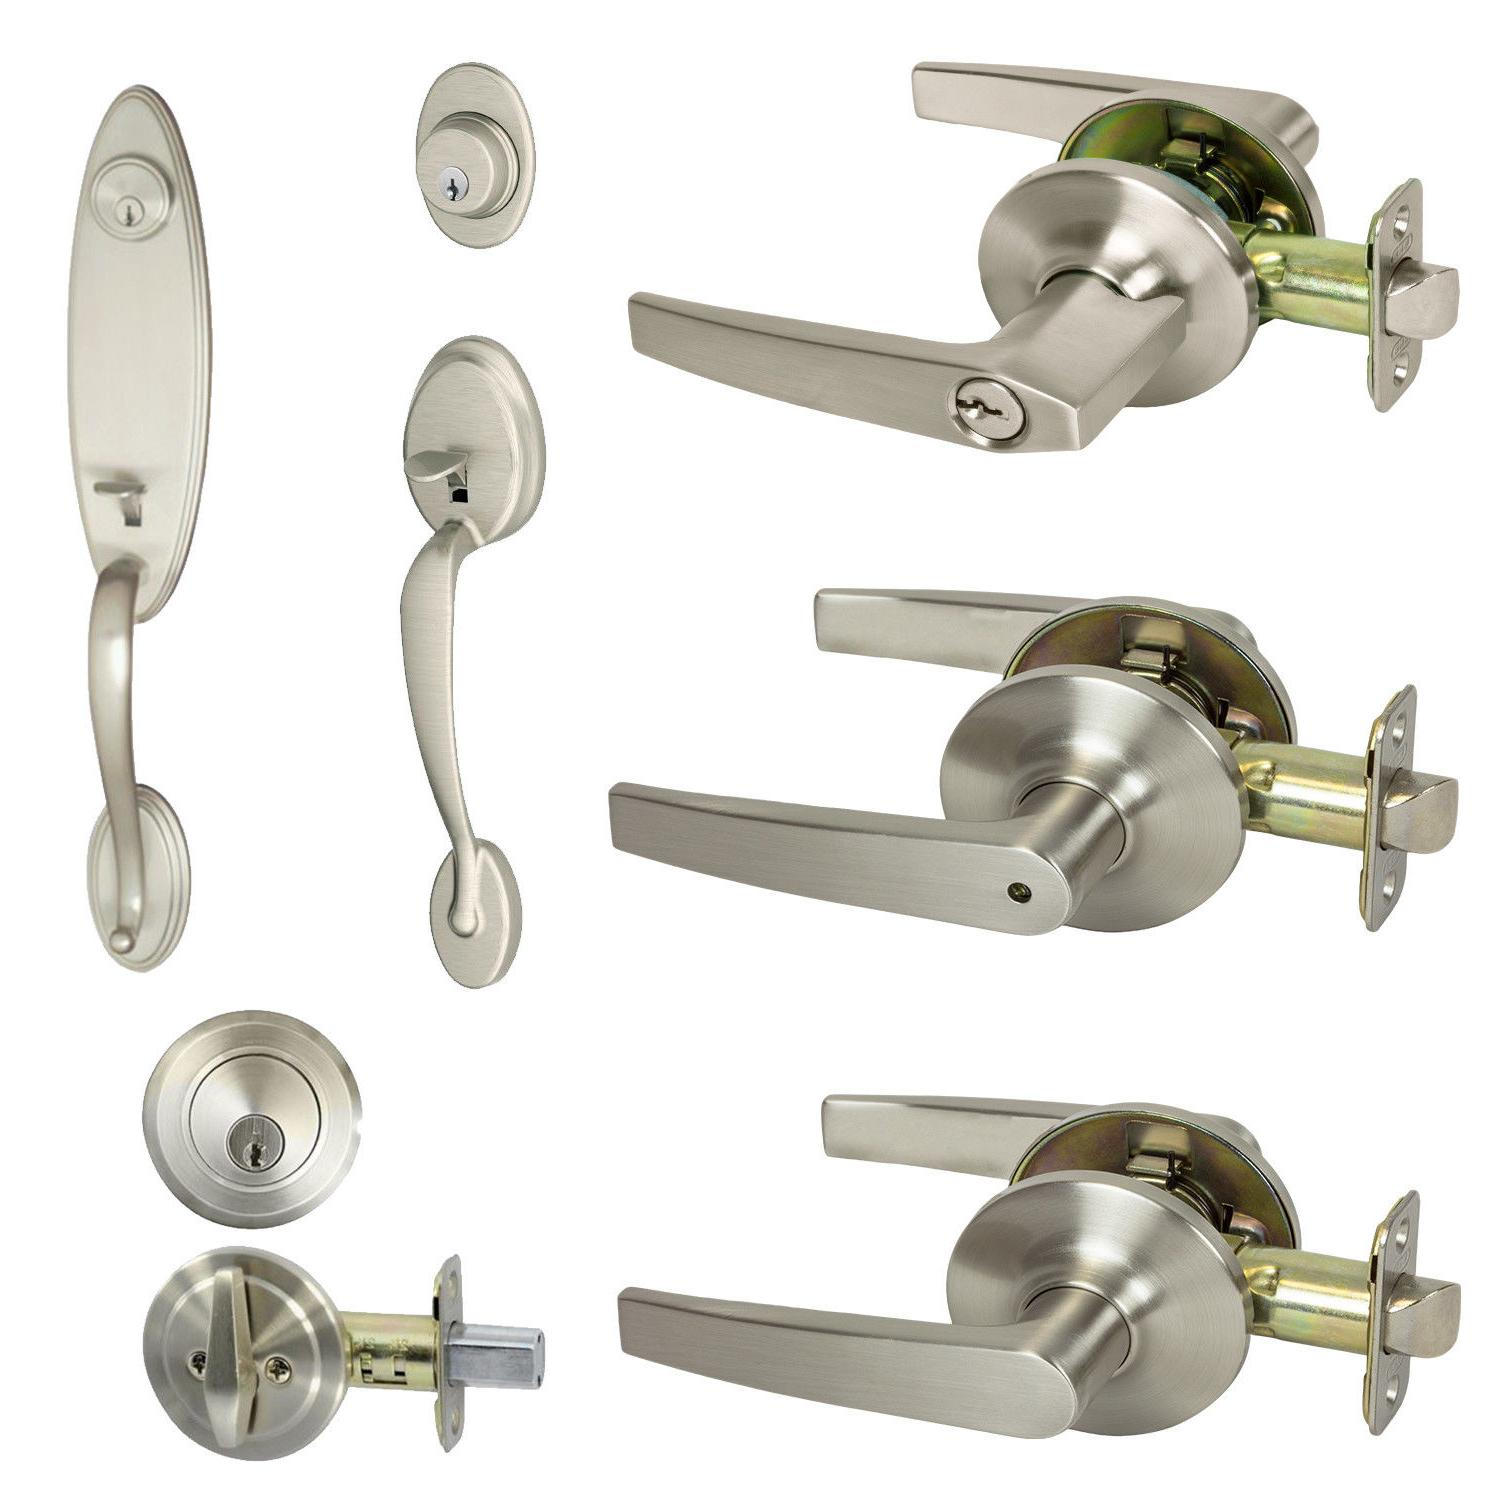 Satin Nickel Door Lever Lock Entry Knob Privacy Bedroom Clos